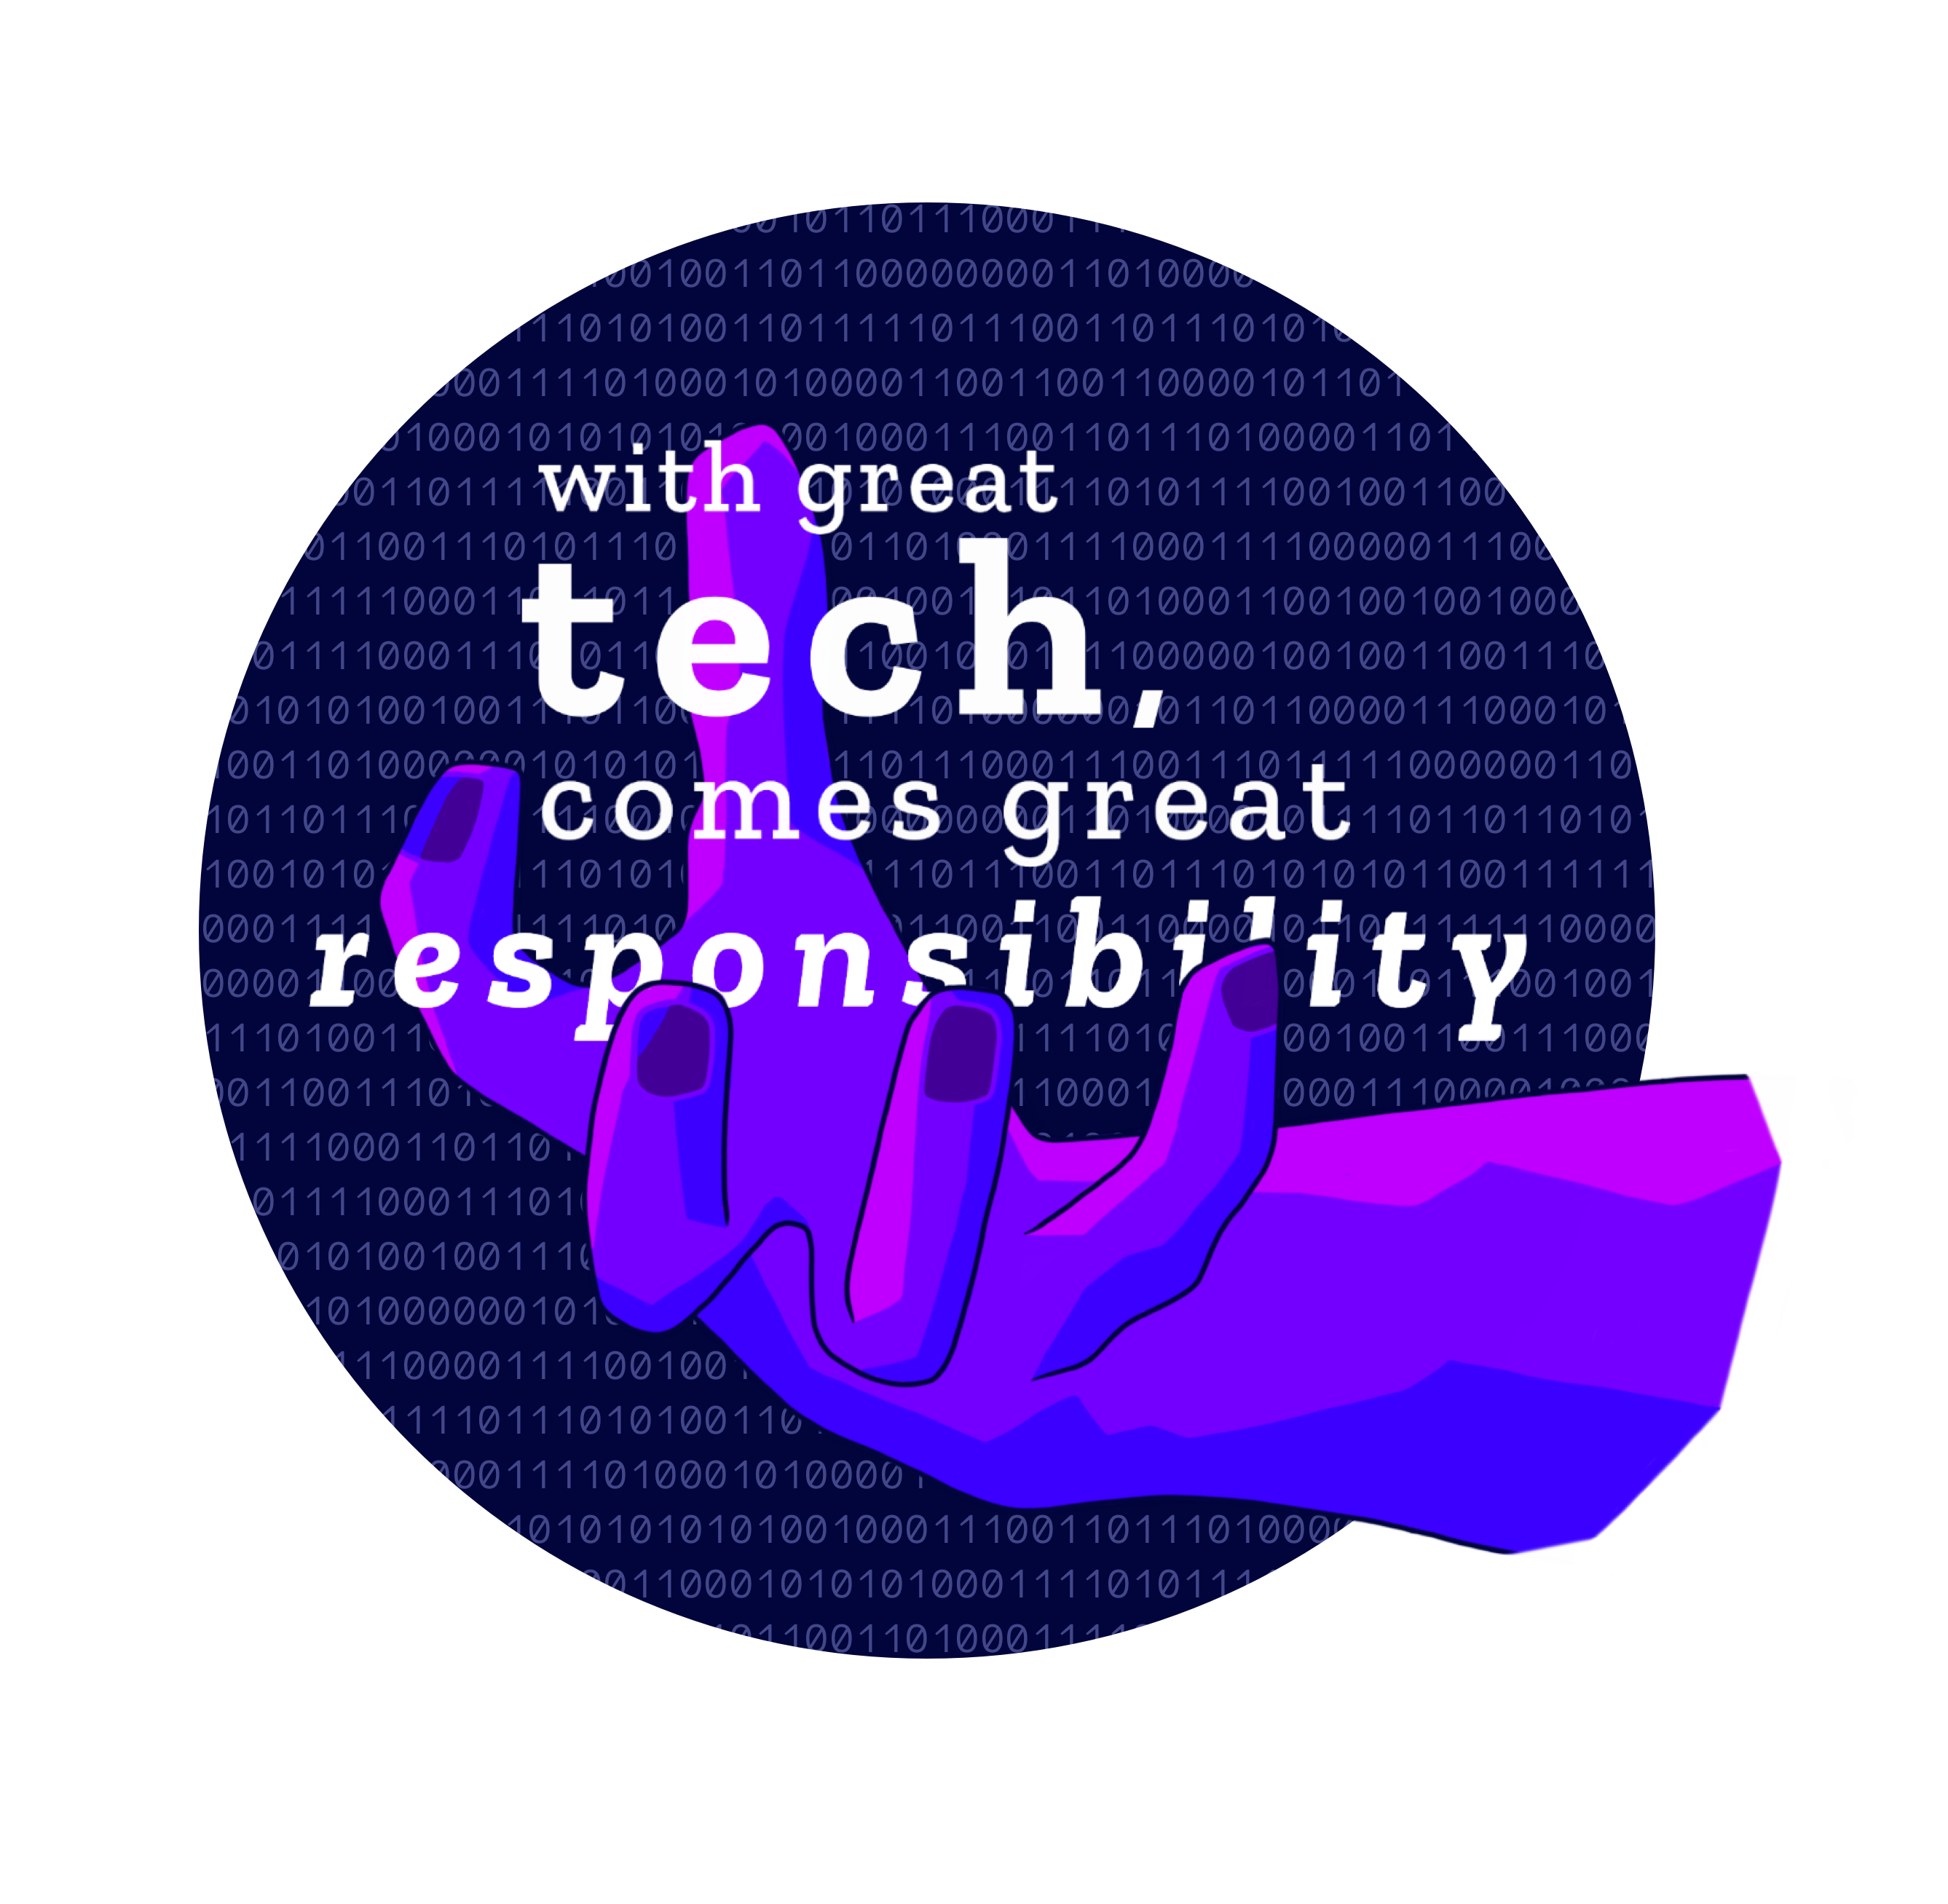 With great tech comes great responsiblity